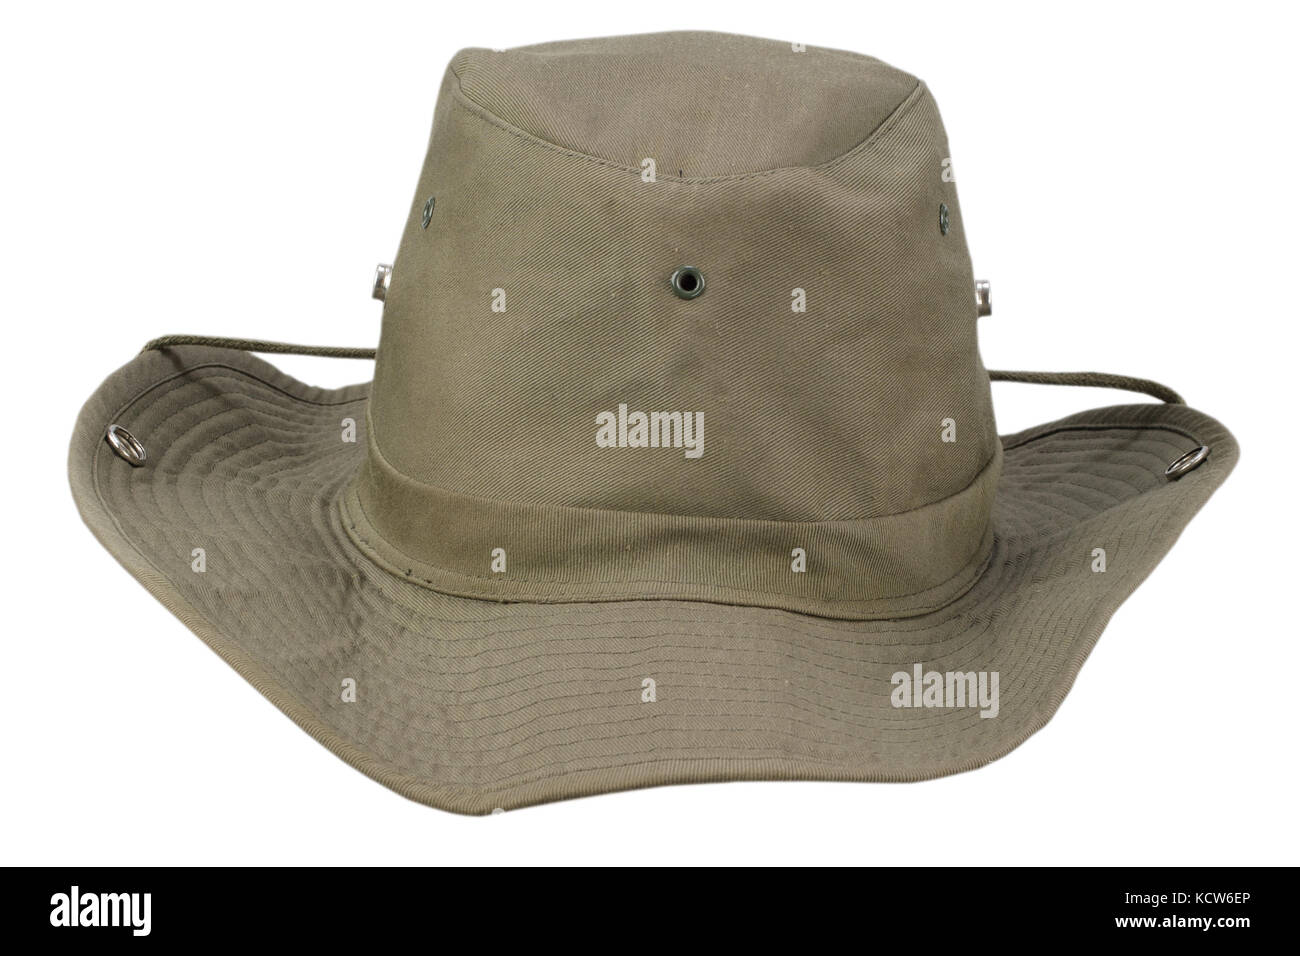 Boonie hat isolated on white background - Stock Image